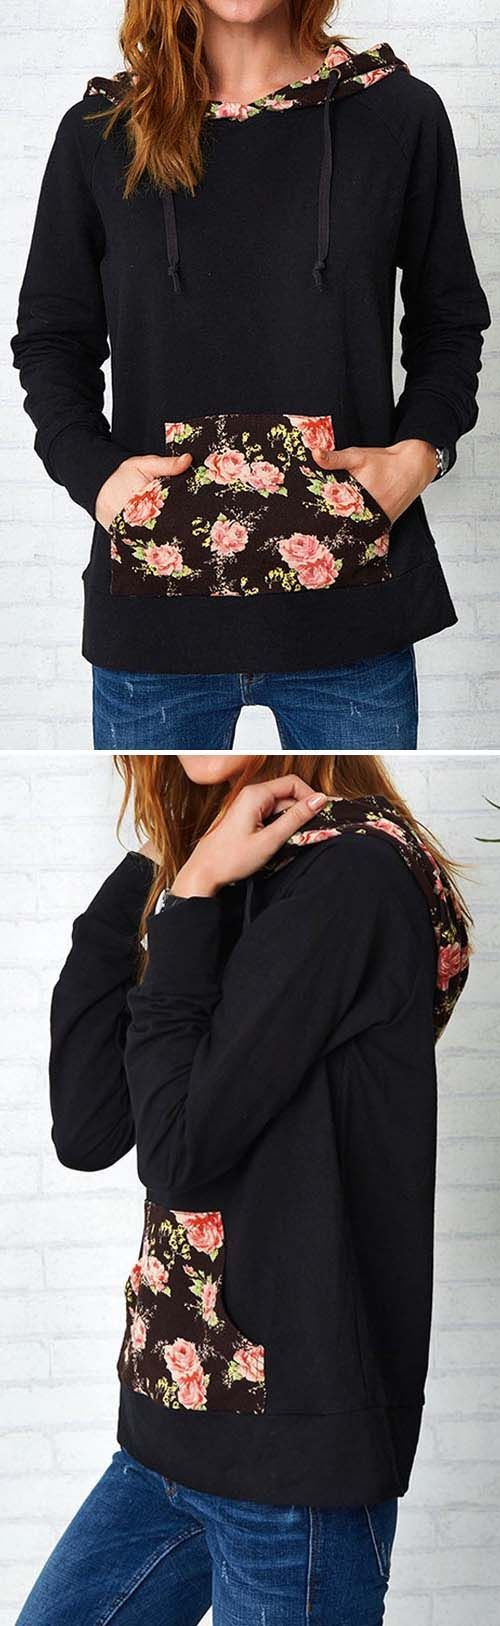 $25.99 & Free shipping! Easy Return + Refund! We love the romantic feel of this sweatshirt! High-quality with absolutely cozy feel! Get some flowers now. For more stylish items at Cupshe.com !